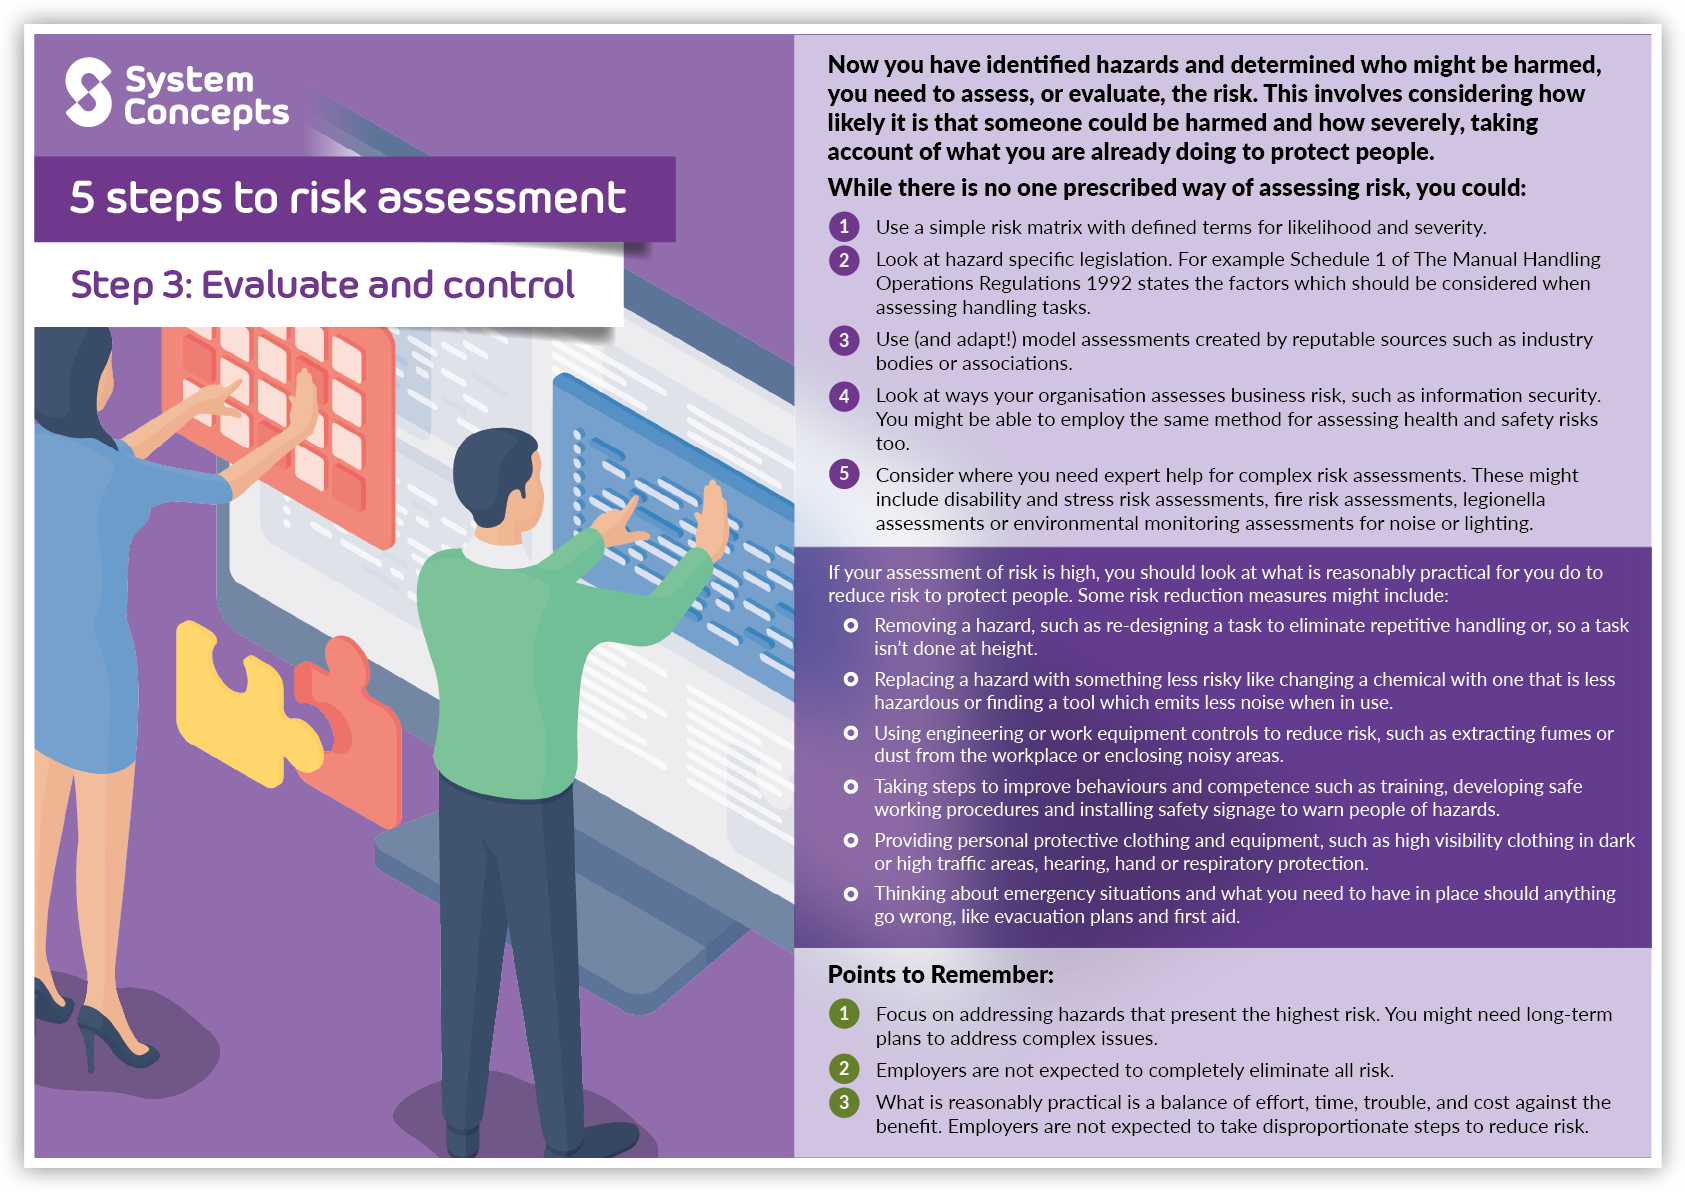 """(alt=""""5 steps to risk assessment. Step 3 - Evaluate and control"""")"""